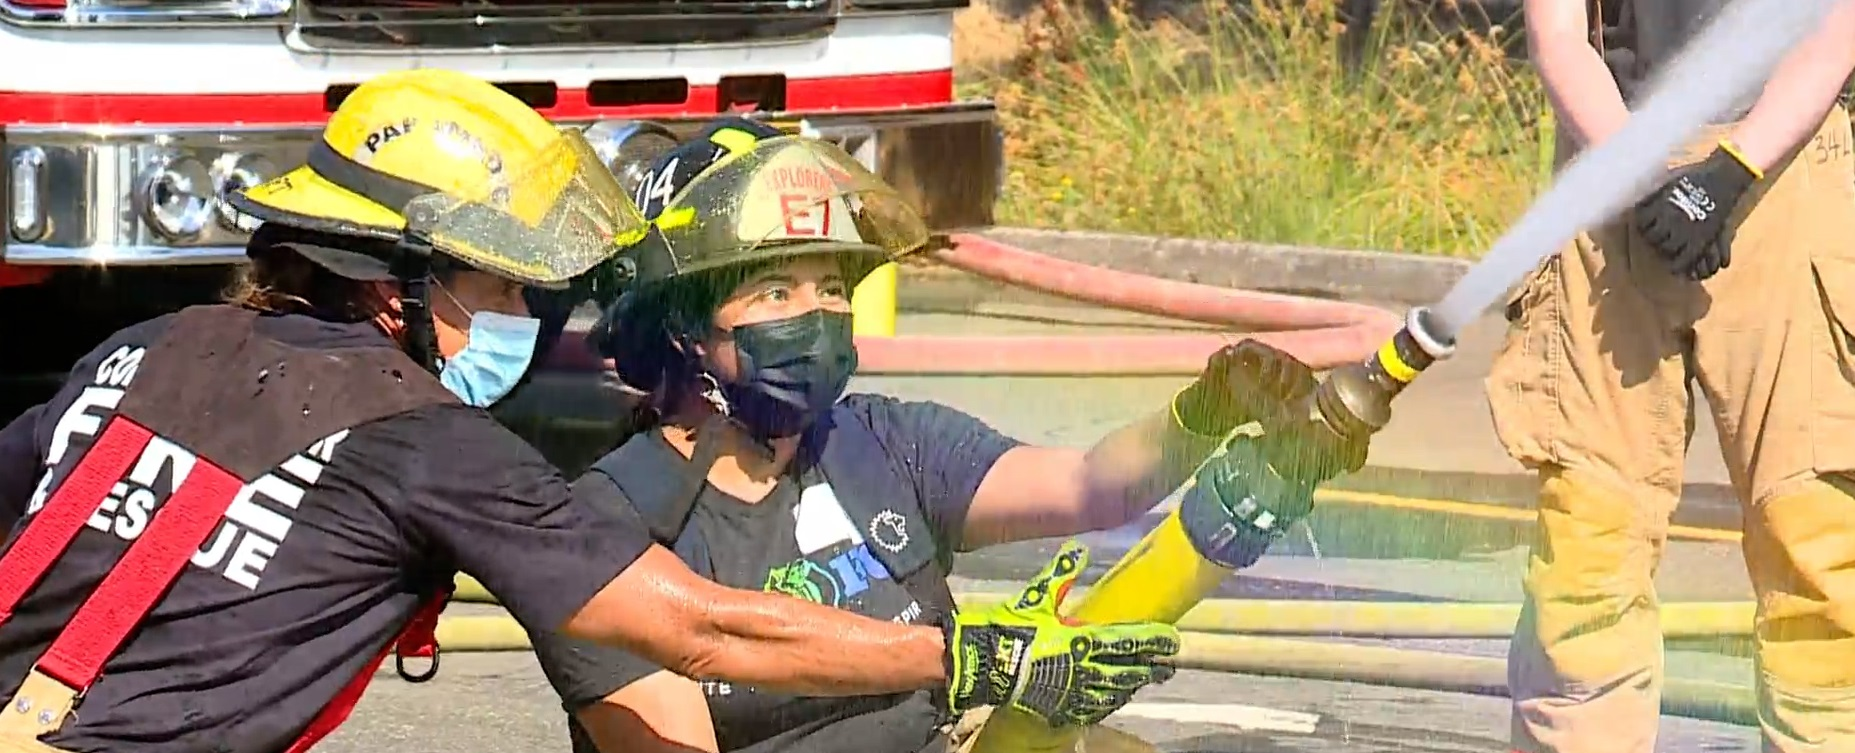 Camp encourages women to join firefighting, emergency response